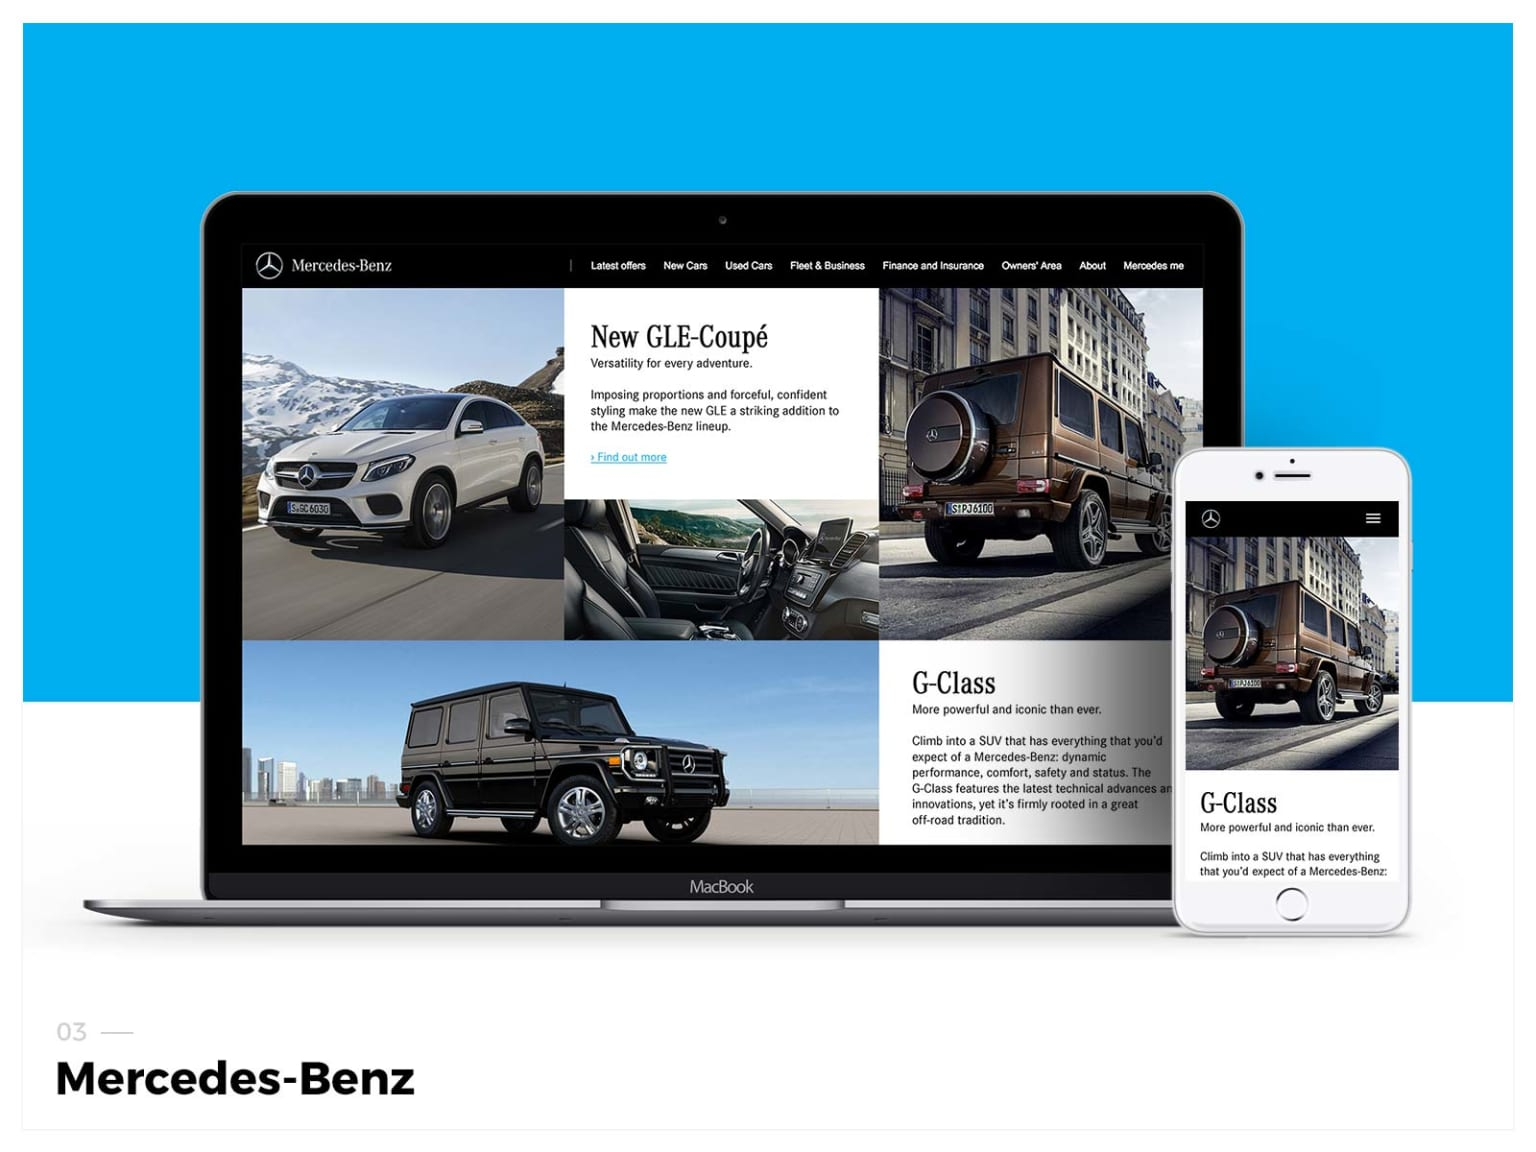 Mercedes-Benz SUV Webpage and BAU Promotion Banners